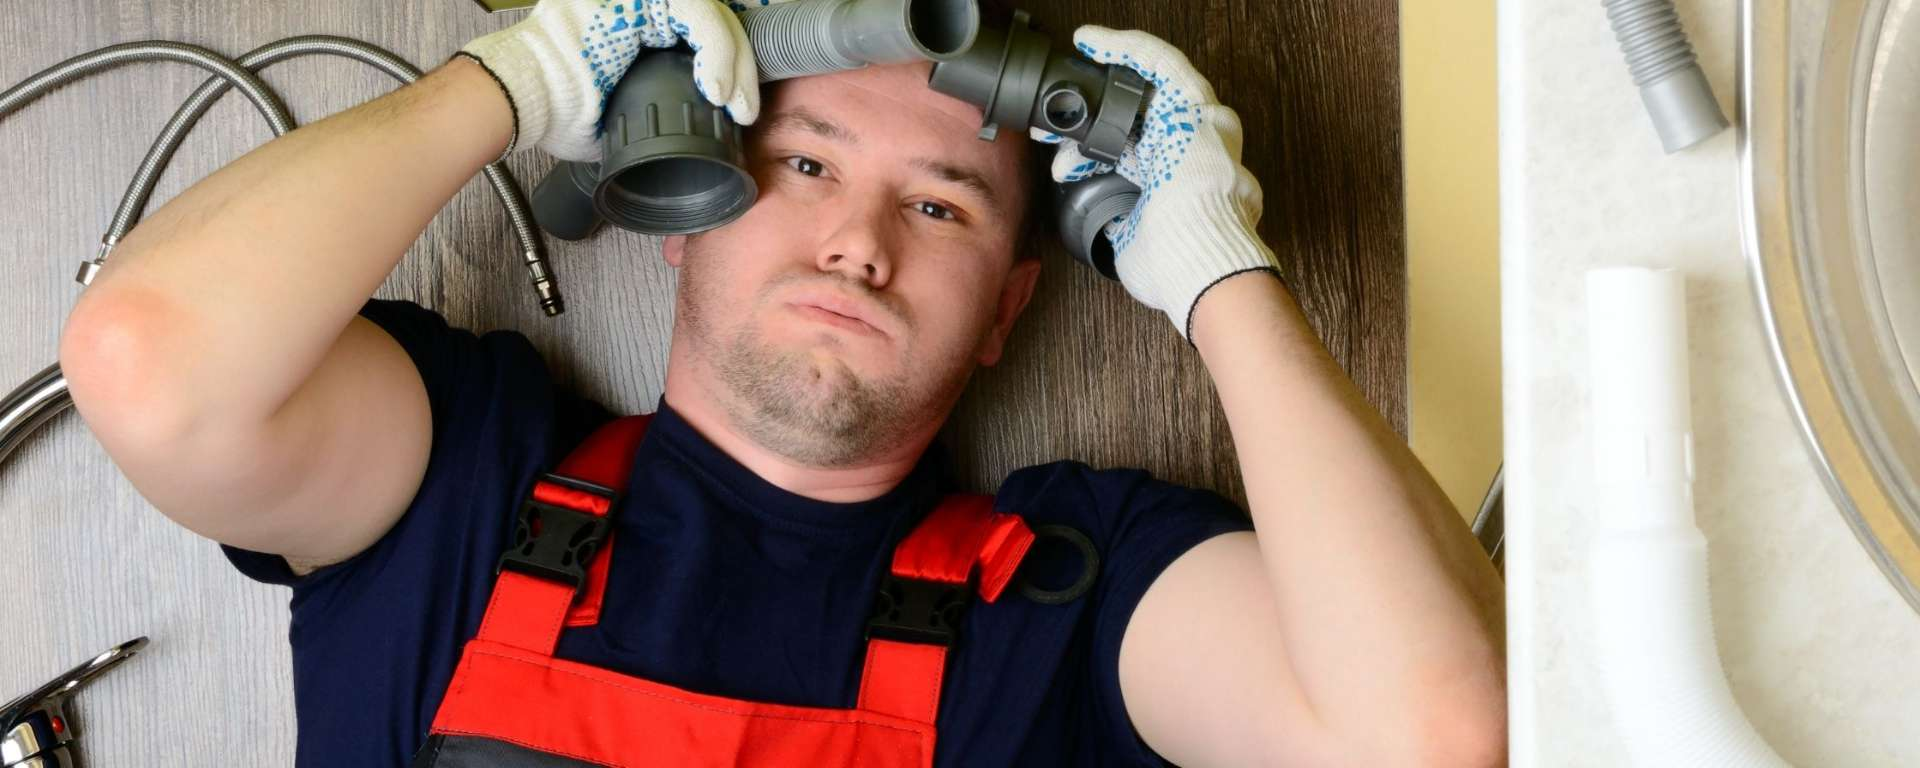 Know The Ideal Qualities Of Edmonton Residential Plumbers - Matthew Hiles | Launchora